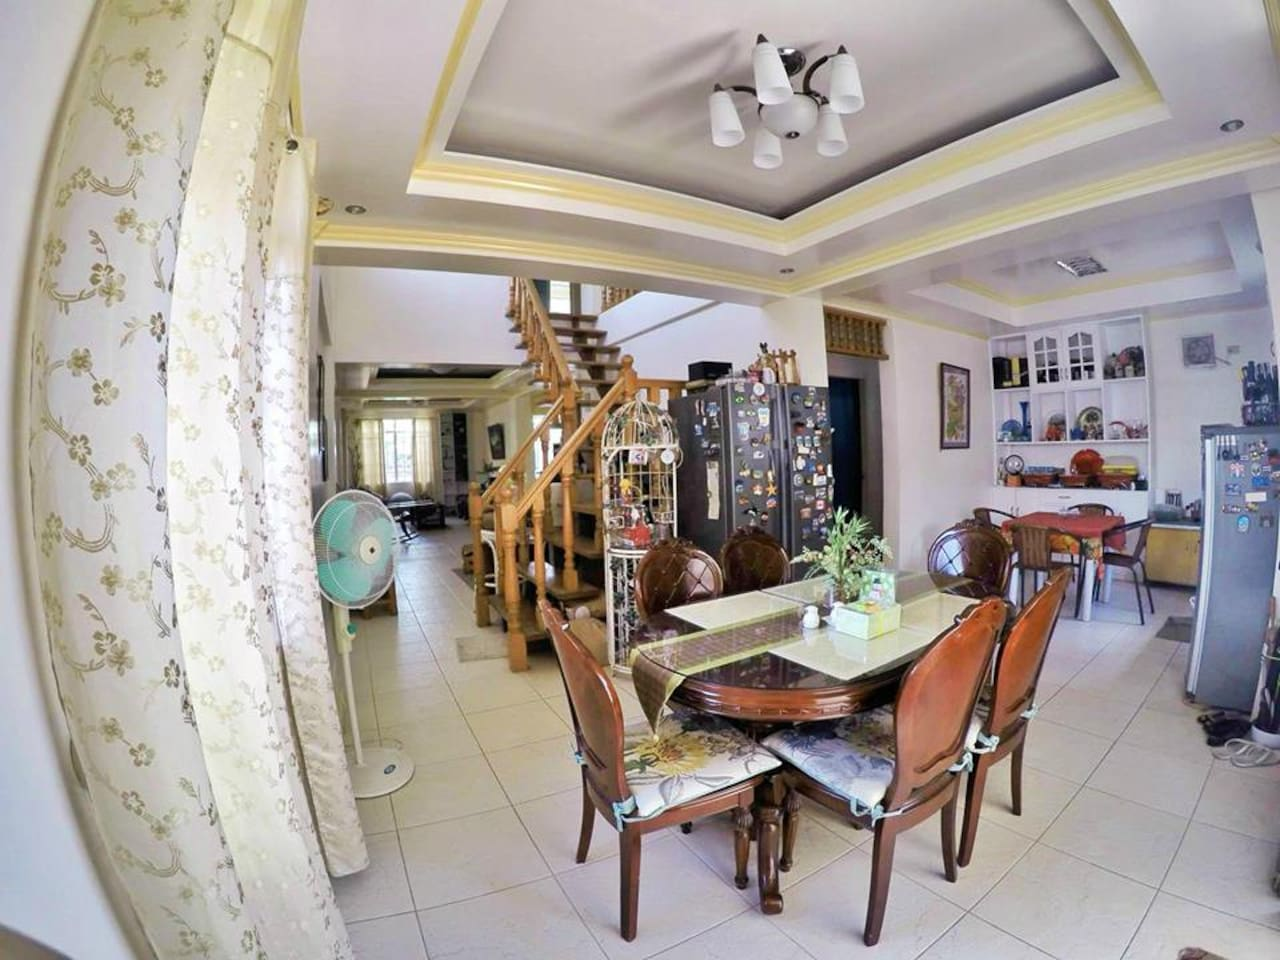 Tables and chairs rental in dasmarinas cavite - Private Room In Dasmarinas Cavite Houses For Rent In Dasmari As Calabarzon Philippines